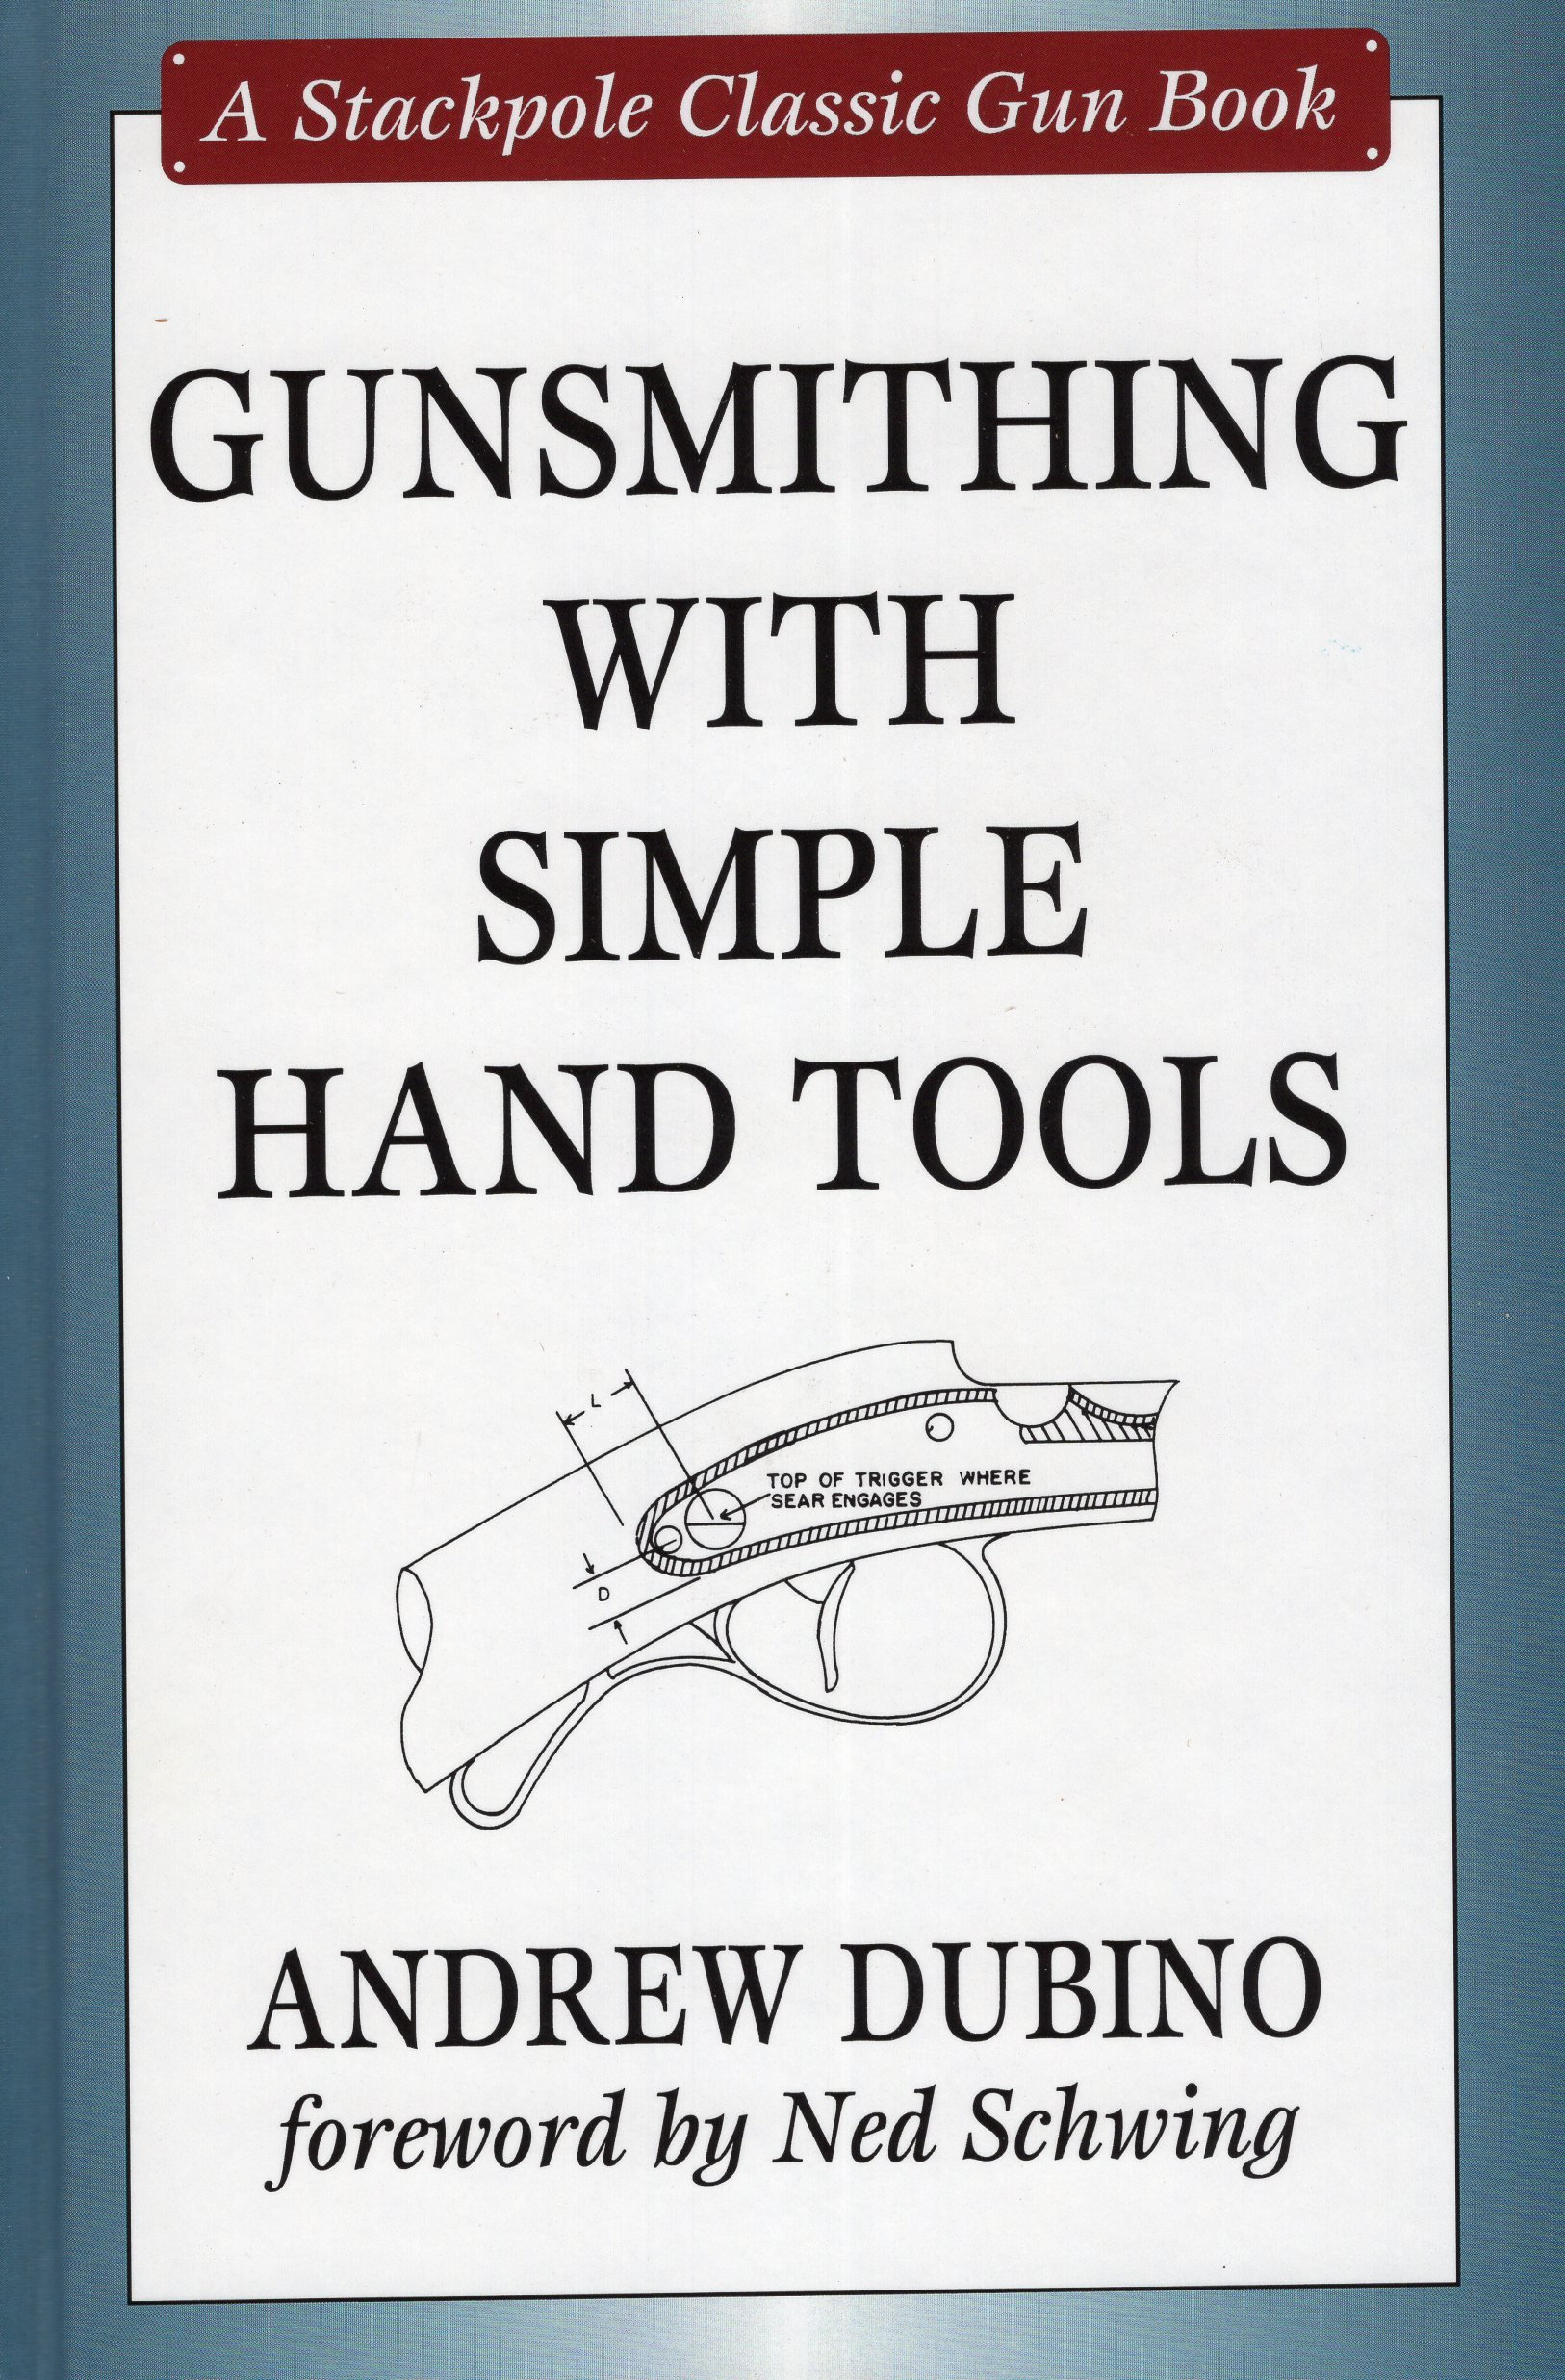 Amazon.com: Gunsmithing with Simple Hand Tools (Stackpole Classic ...